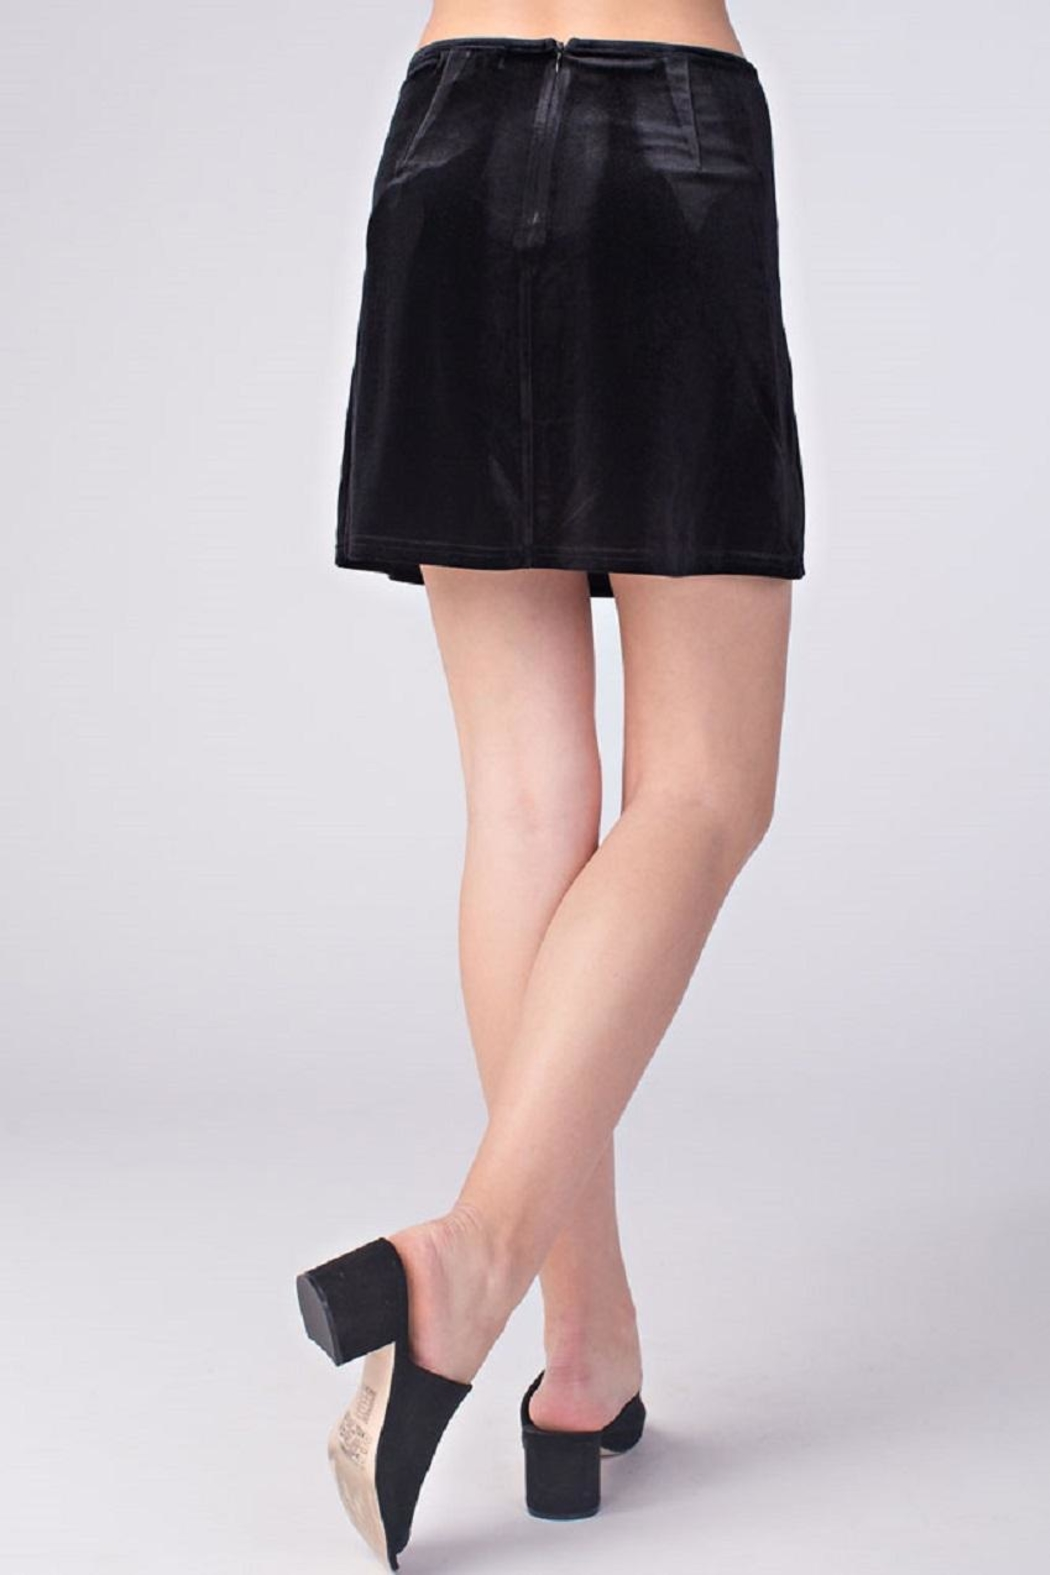 Honey Punch Black Velvet Skirt - Front Full Image